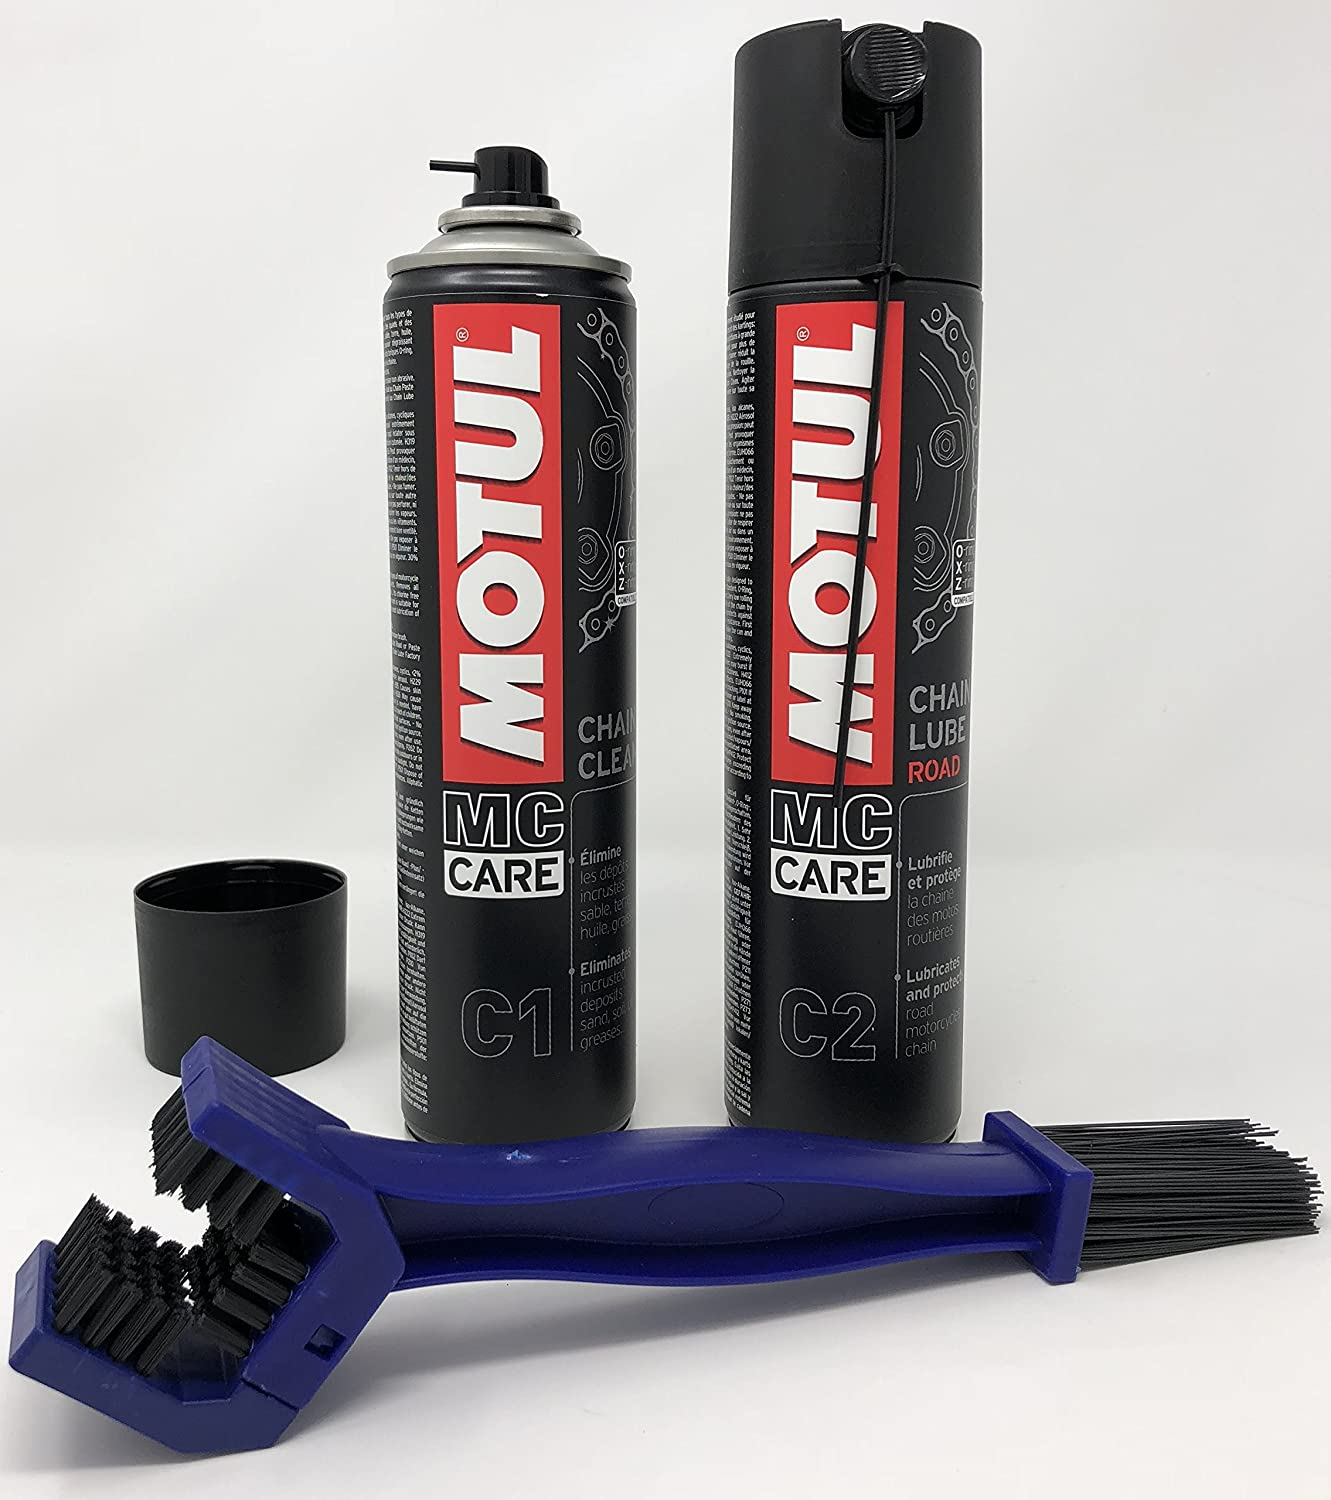 MOTUL C1+C2 ON ROAD CHAIN CARE KIT, INCUDING-- C2 CHAIN LUBE, C1 CLEANER, AND CHAIN CLEANING BRUSH (IN BLUE OR BLACK) CMS MOTUL